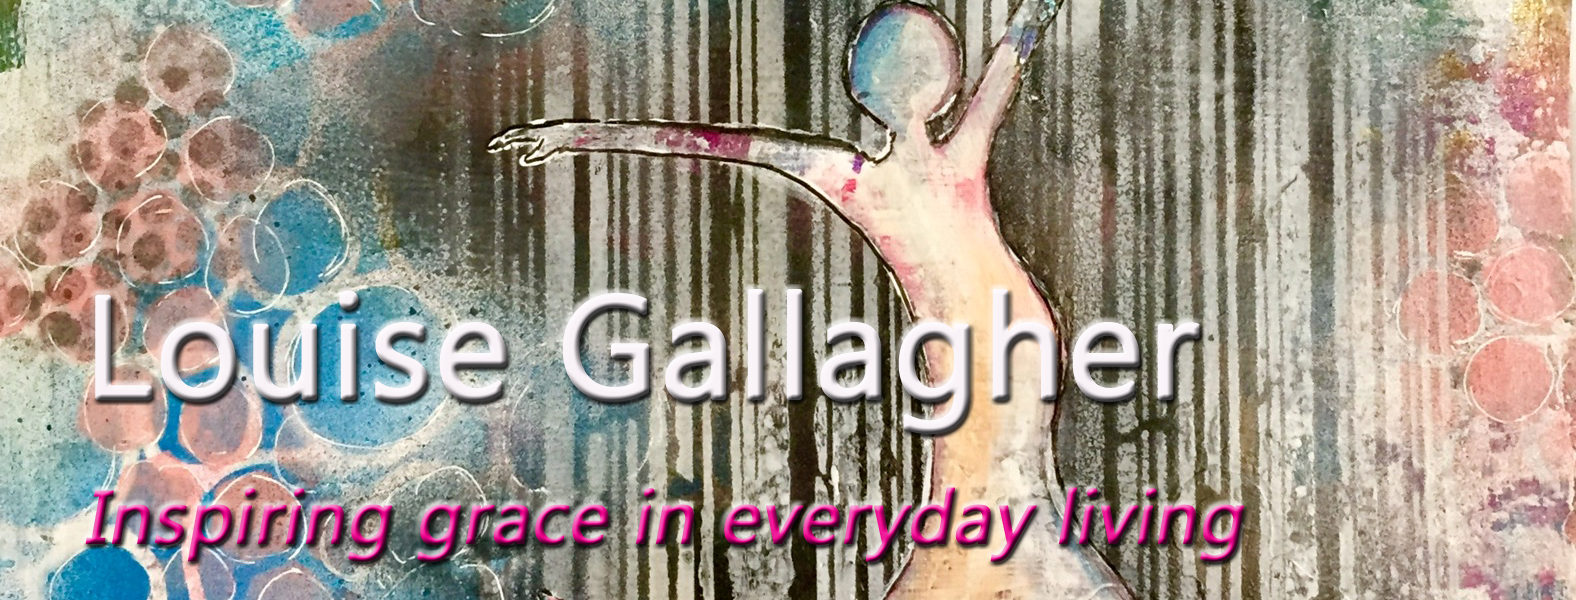 Louise Gallagher header image